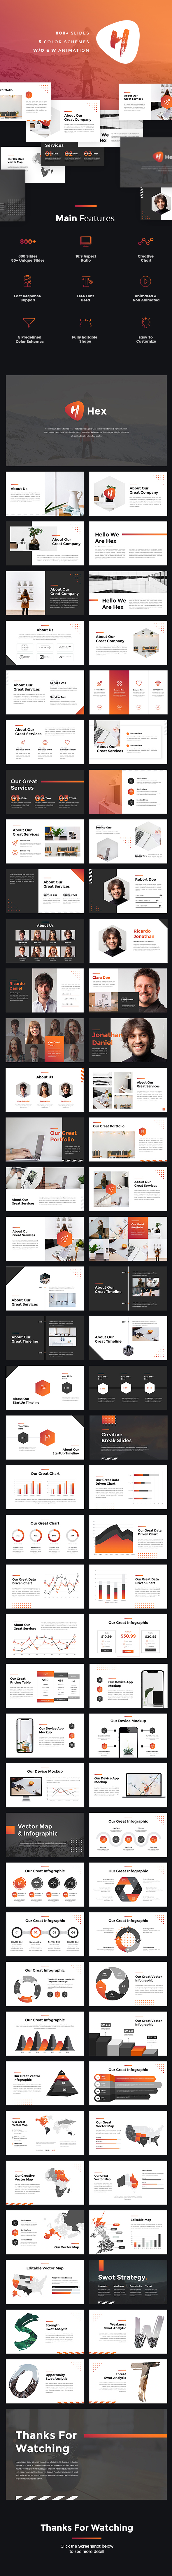 Hex - StartUp Pitch Deck PowerPoint Template - Pitch Deck PowerPoint Templates